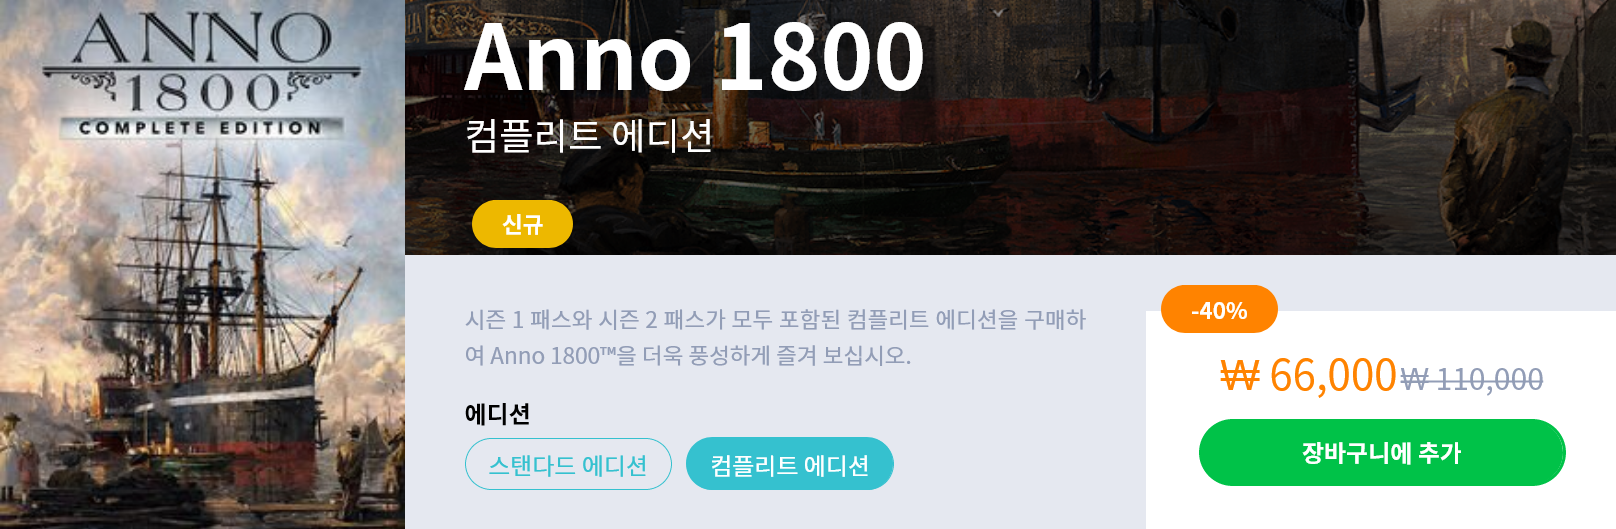 Screenshot_2020-03-10 Anno 1800 Complete Edition.png